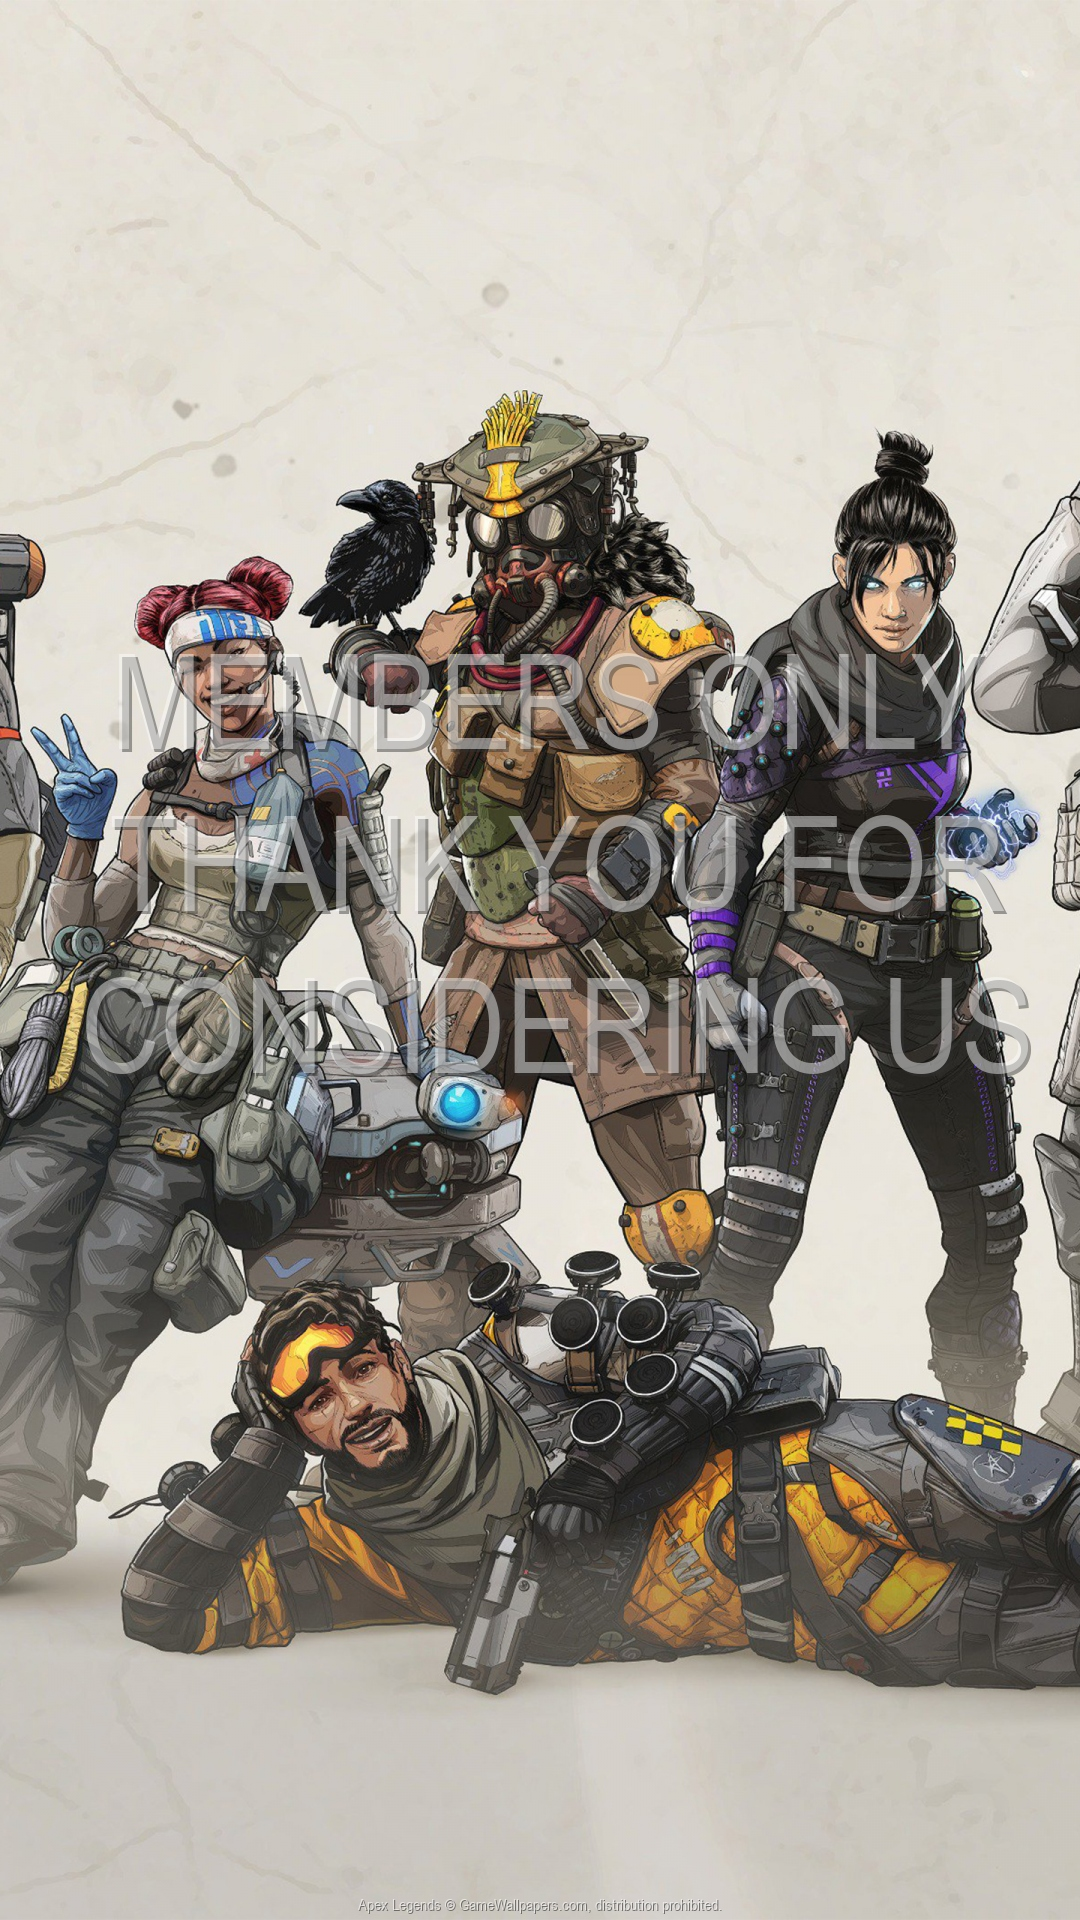 Apex Legends 1920x1080 Mobile wallpaper or background 03